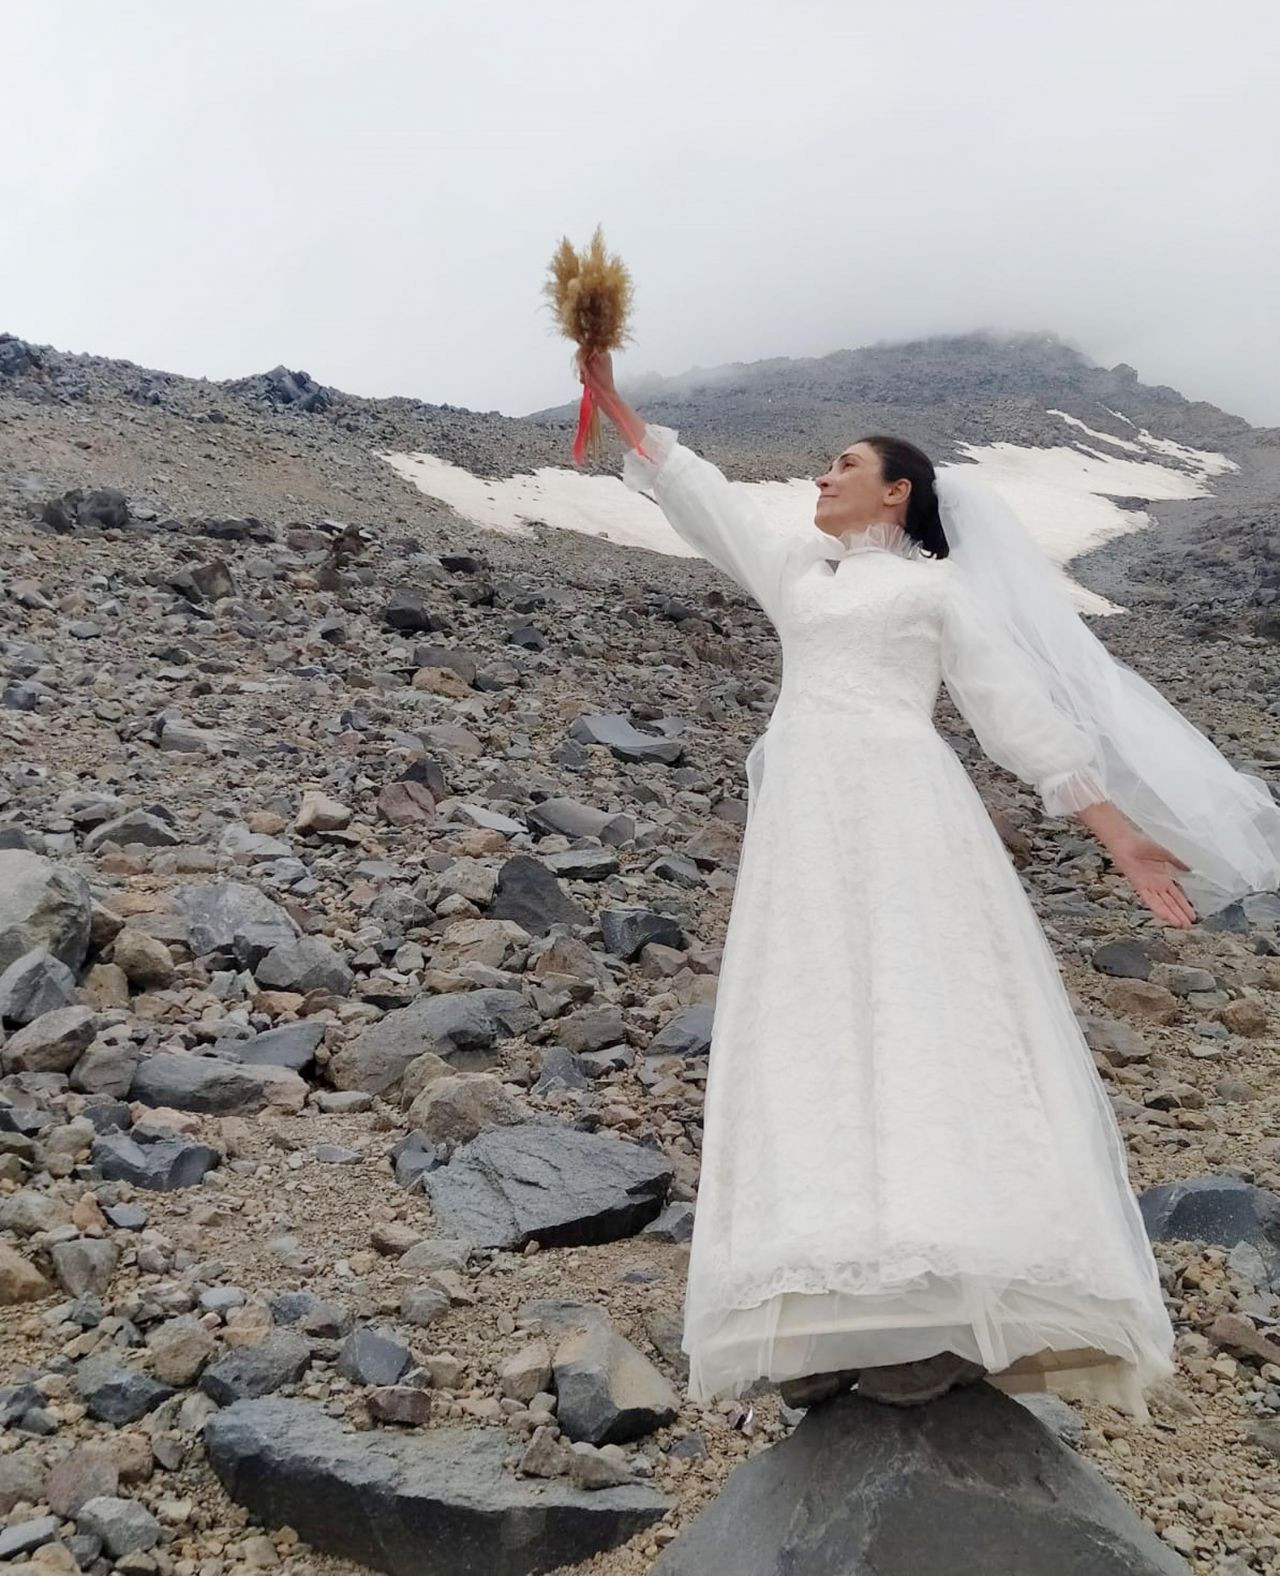 Turkish climber 'marries' Mount Ararat to protest violence against women - Page 3